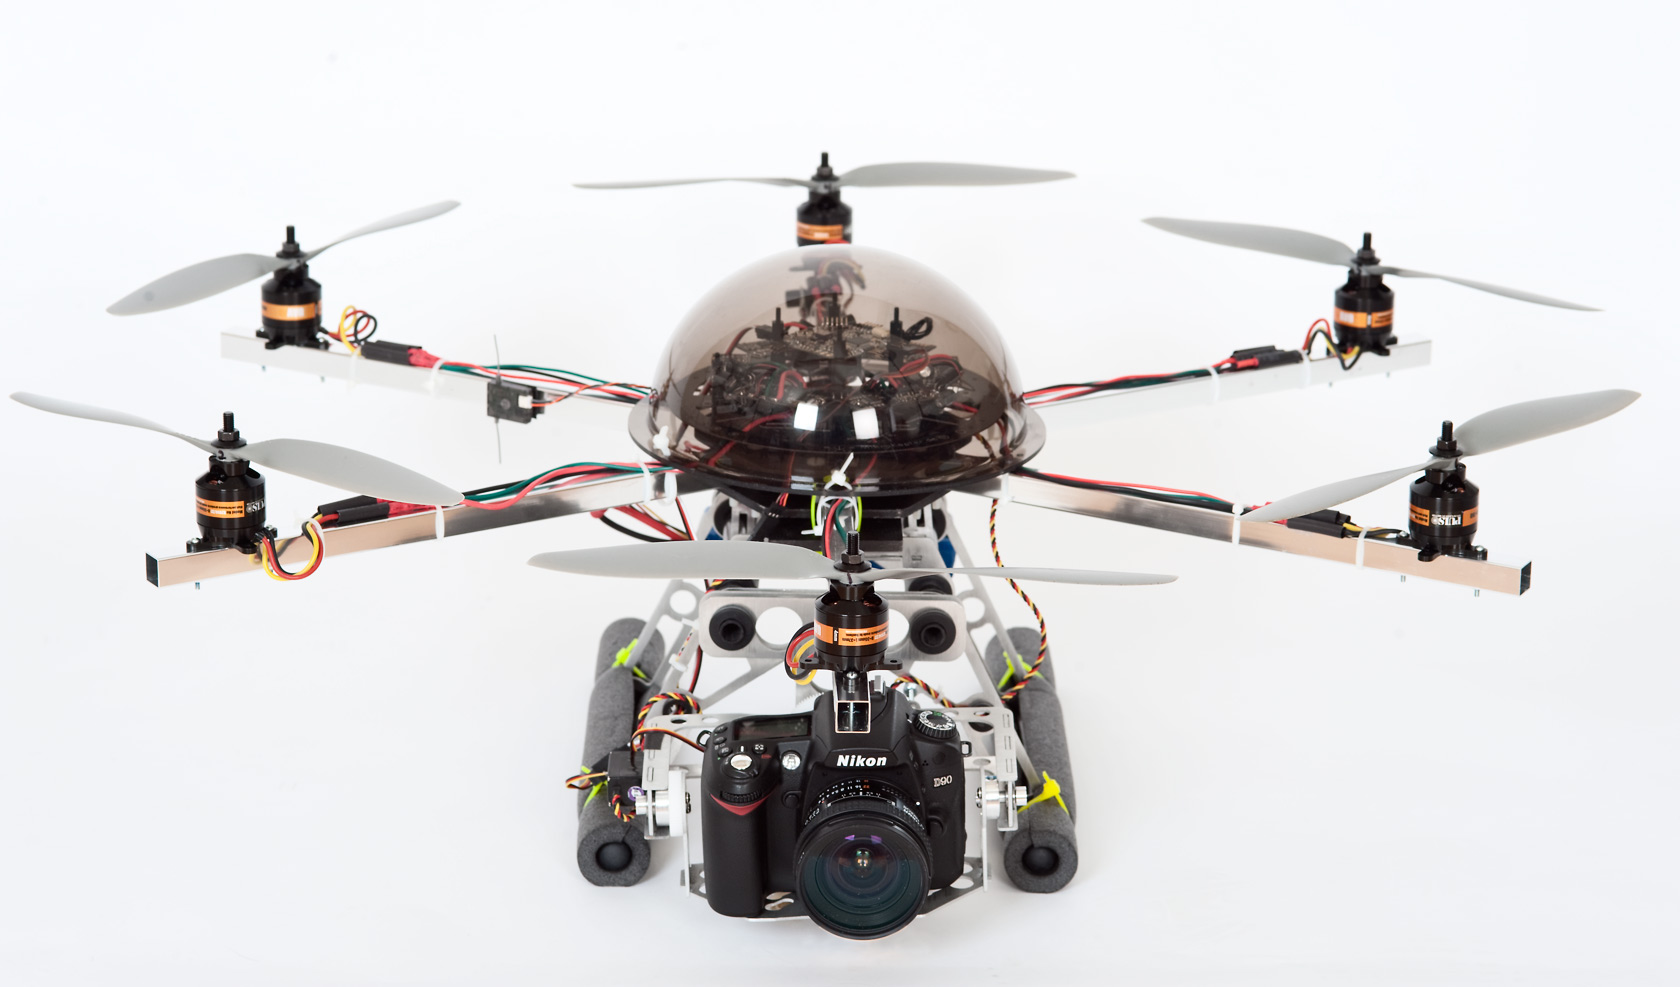 build remote control helicopter with Hexacopter on Watch also Remote Operated Spy Robot Circuit in addition Watch in addition Nitro Or Gt15hz Goblin 700 Prototype together with Venom Ozone 3 5 Channel Remote Controlled Helicopter 67092.